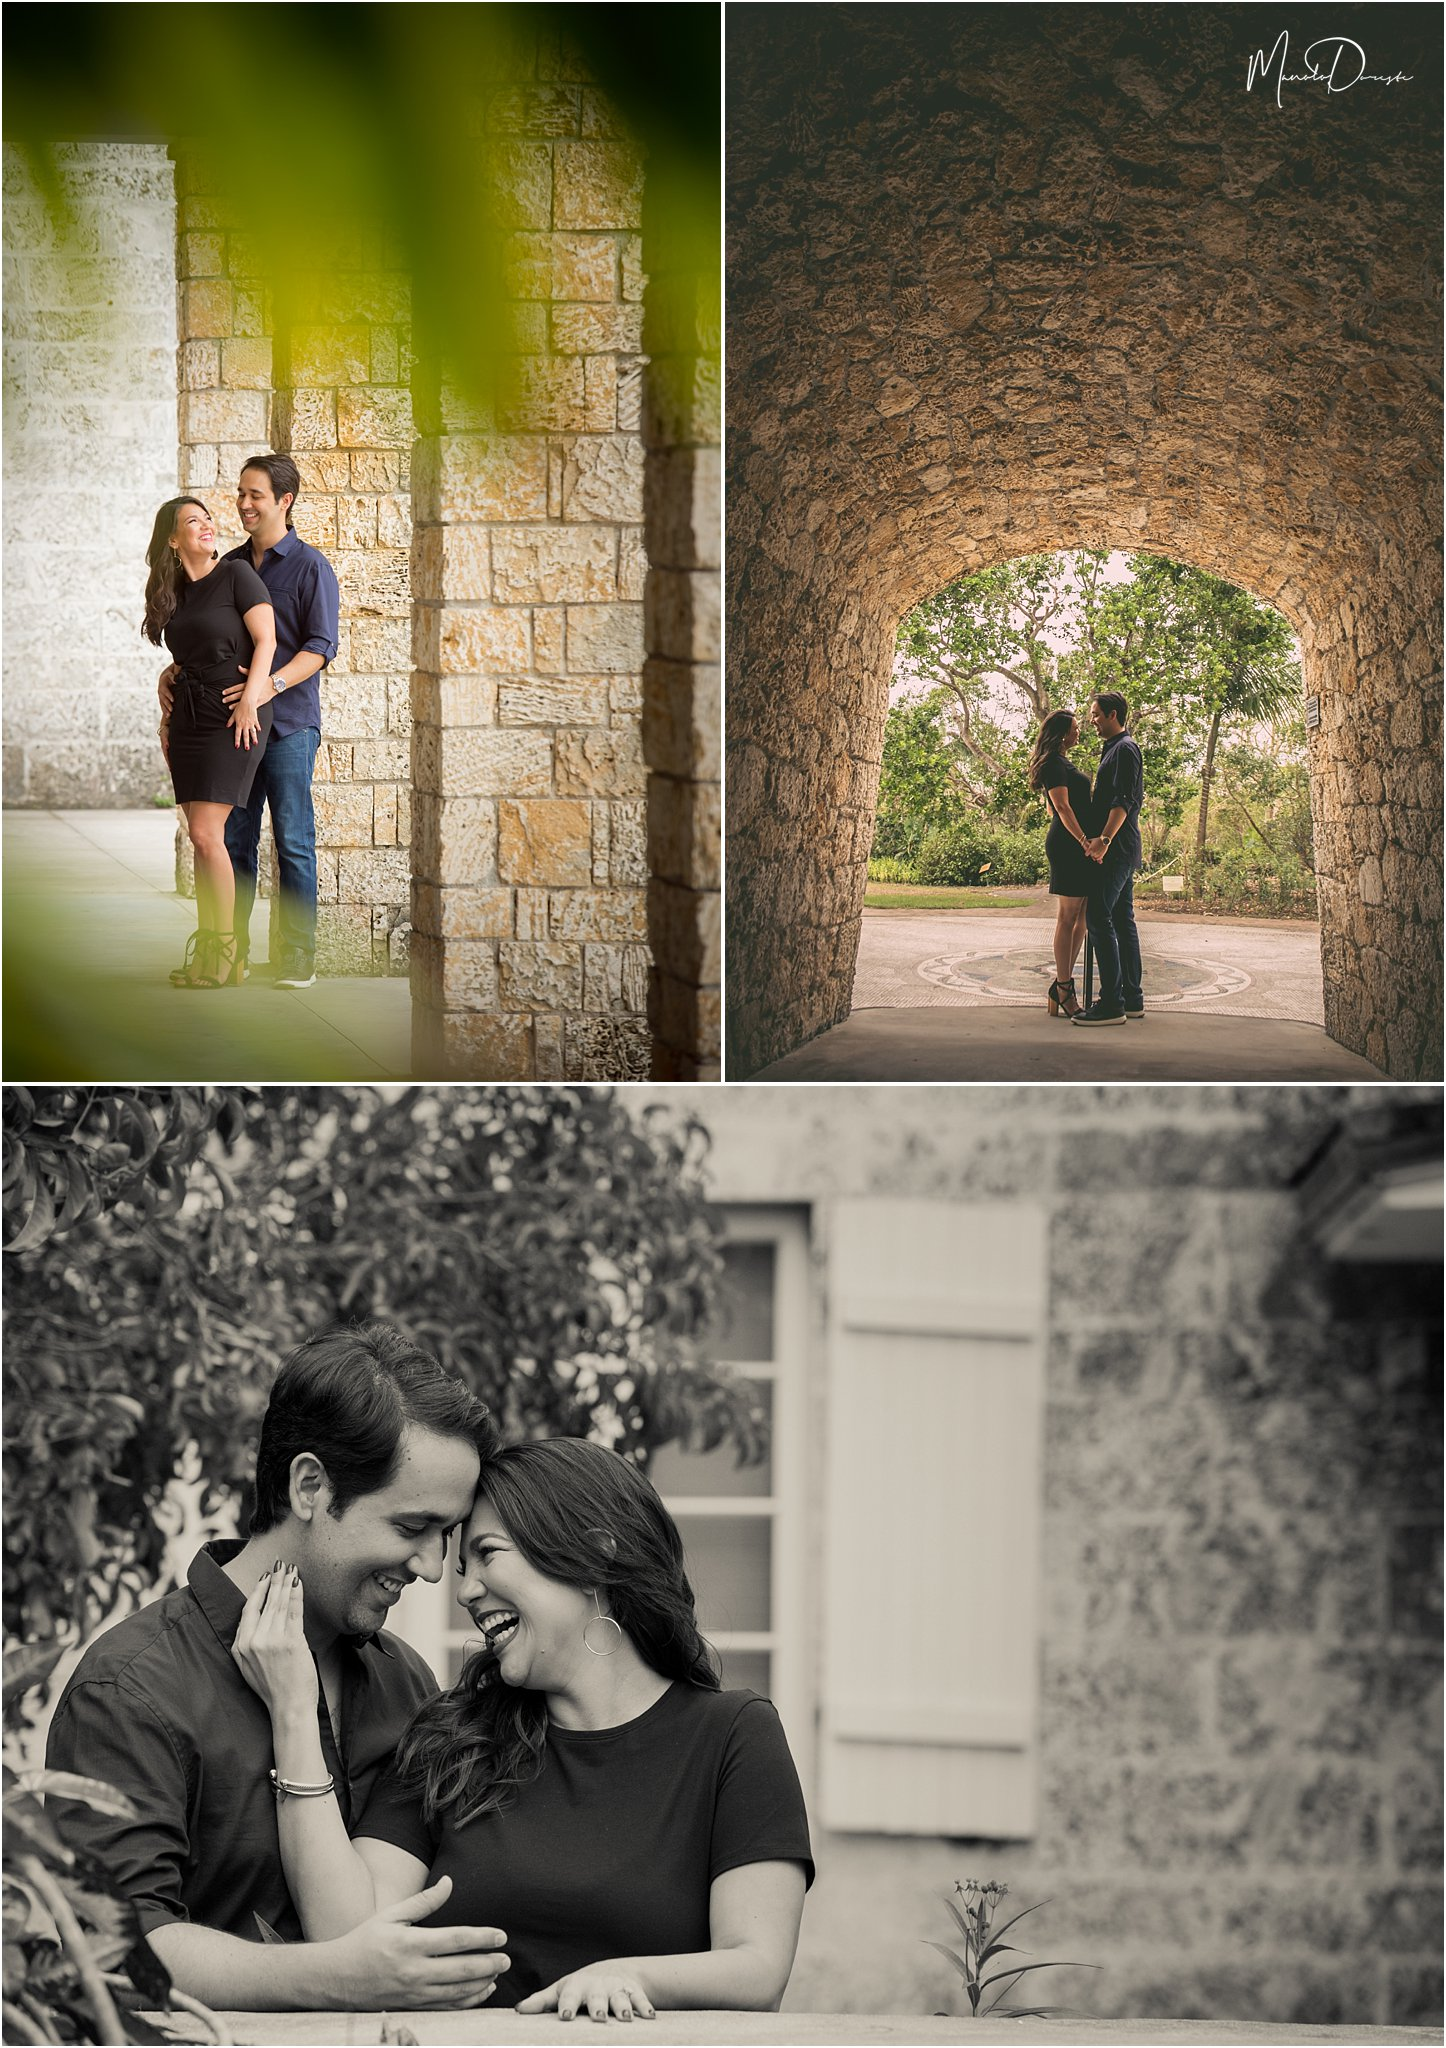 0221_ManoloDoreste_InFocusStudios_Wedding_Family_Photography_Miami_MiamiPhotographer.jpg